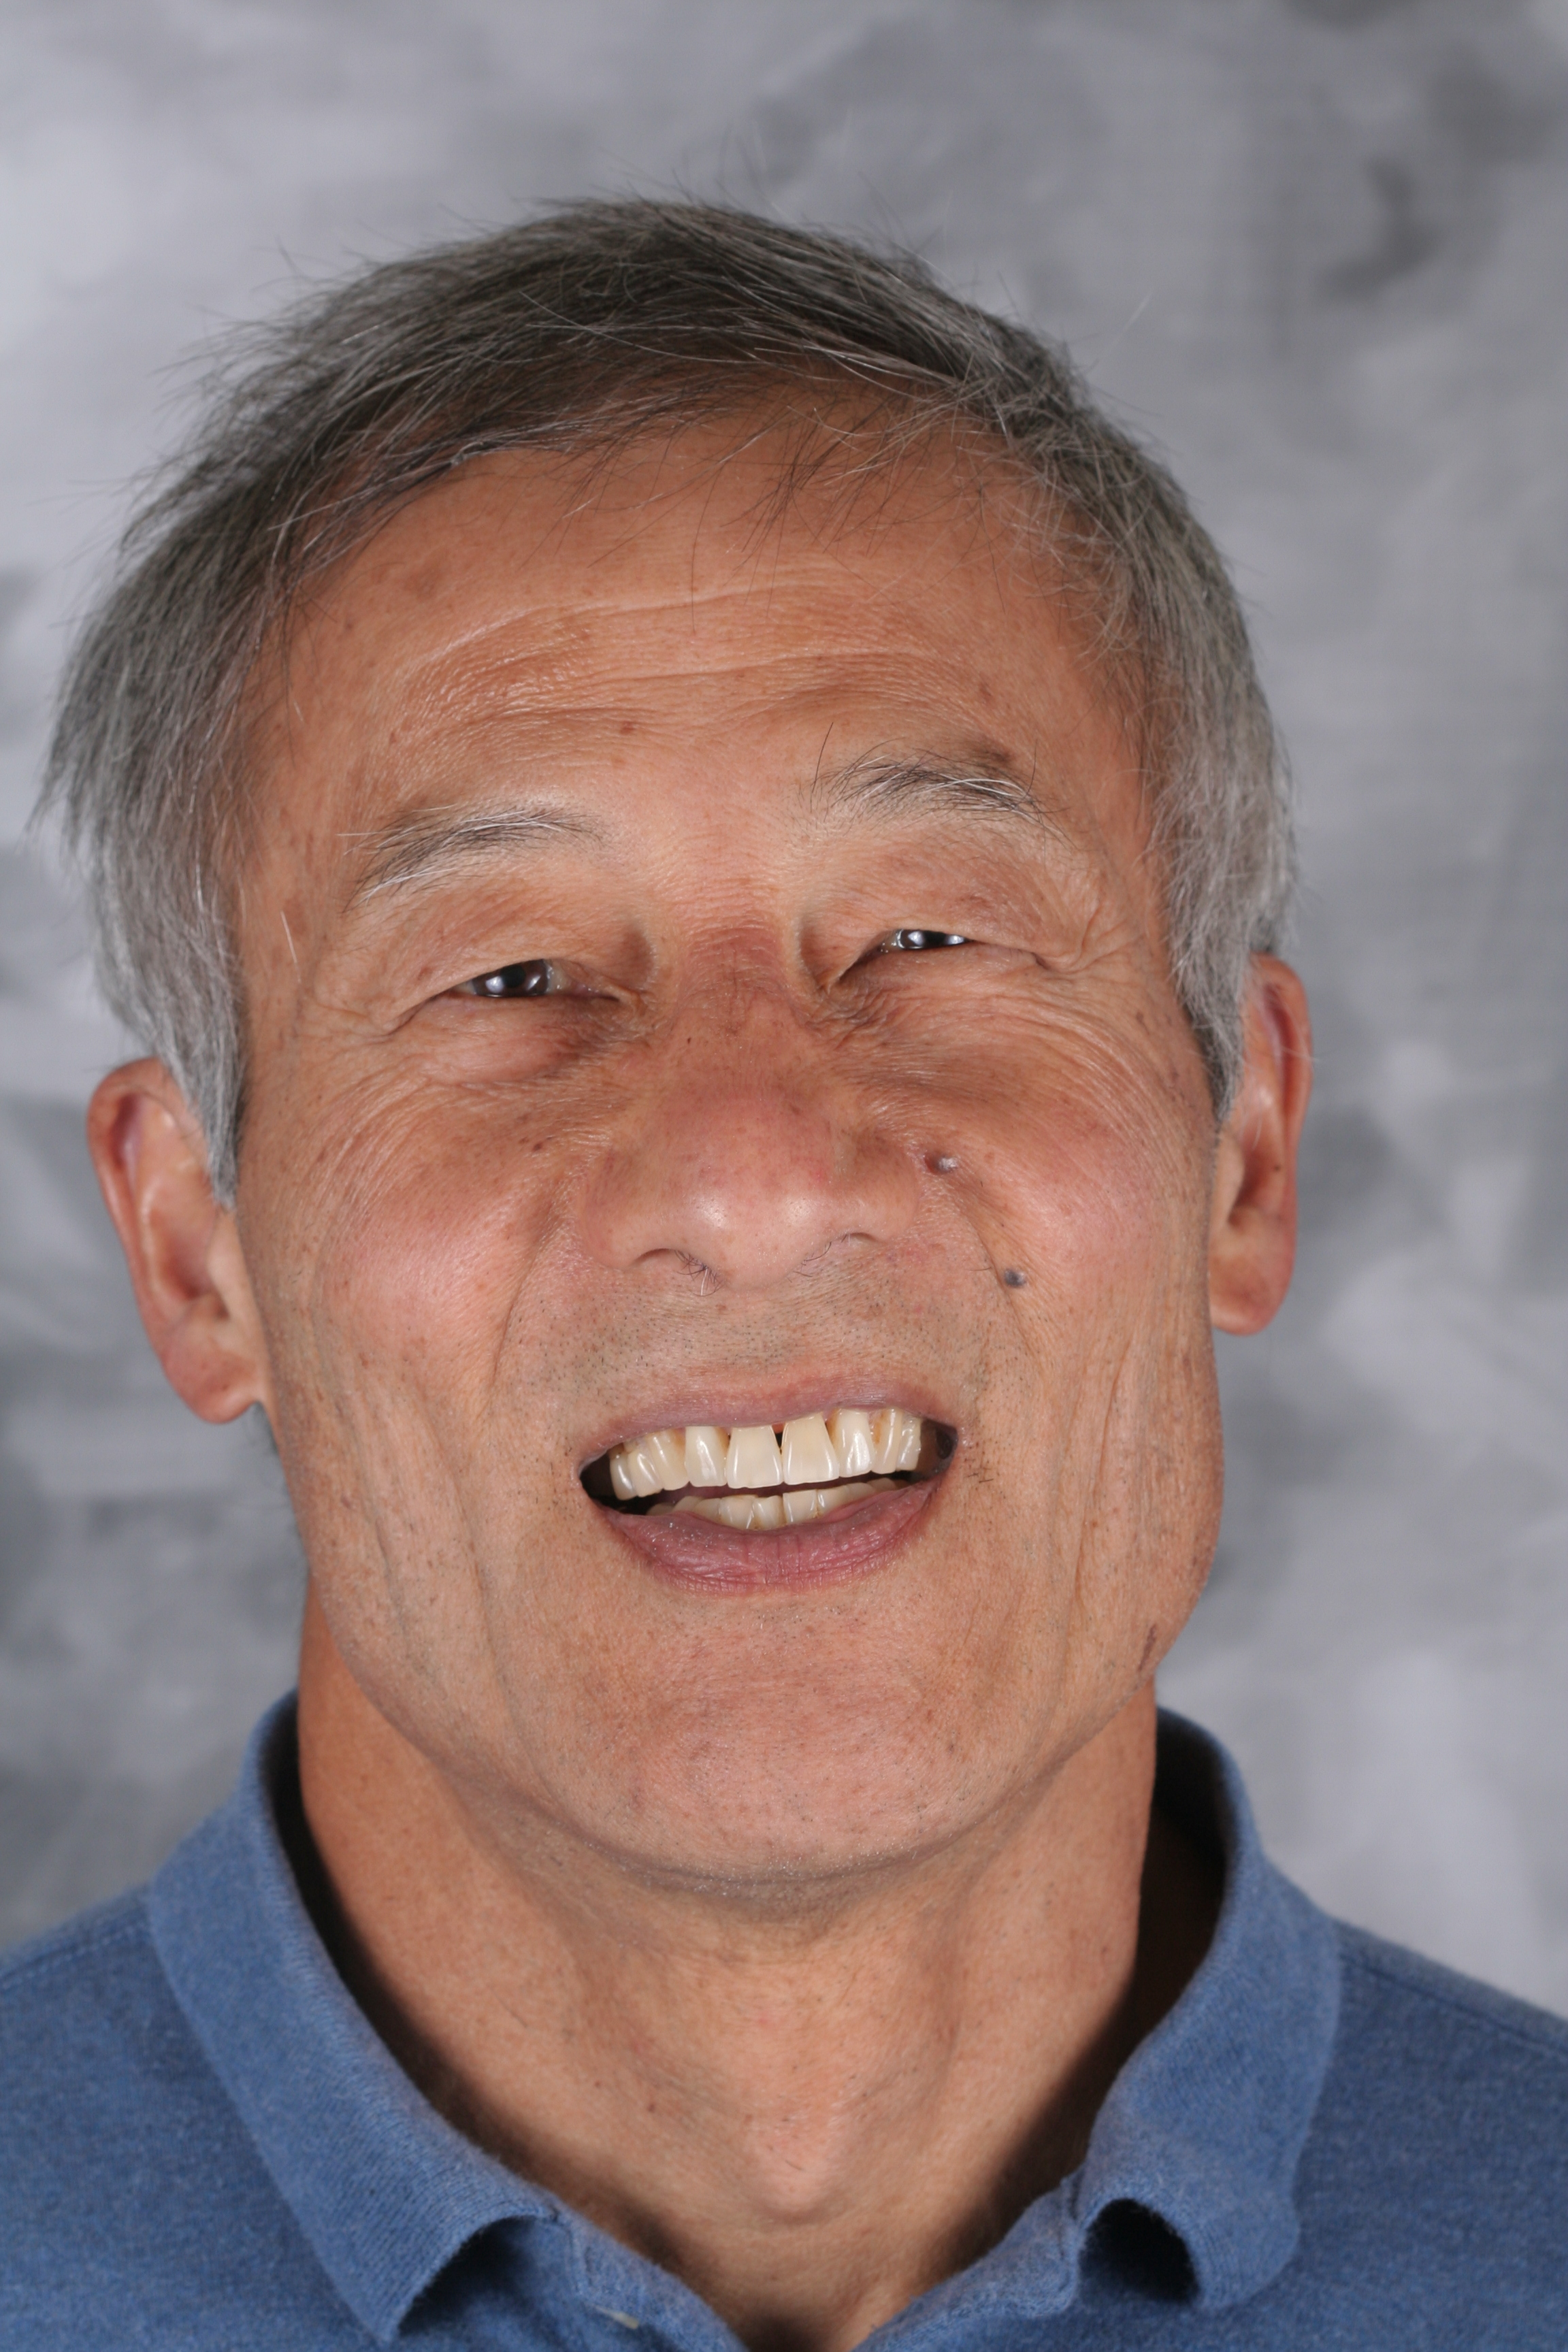 Dr. Jerry Hong, DDS